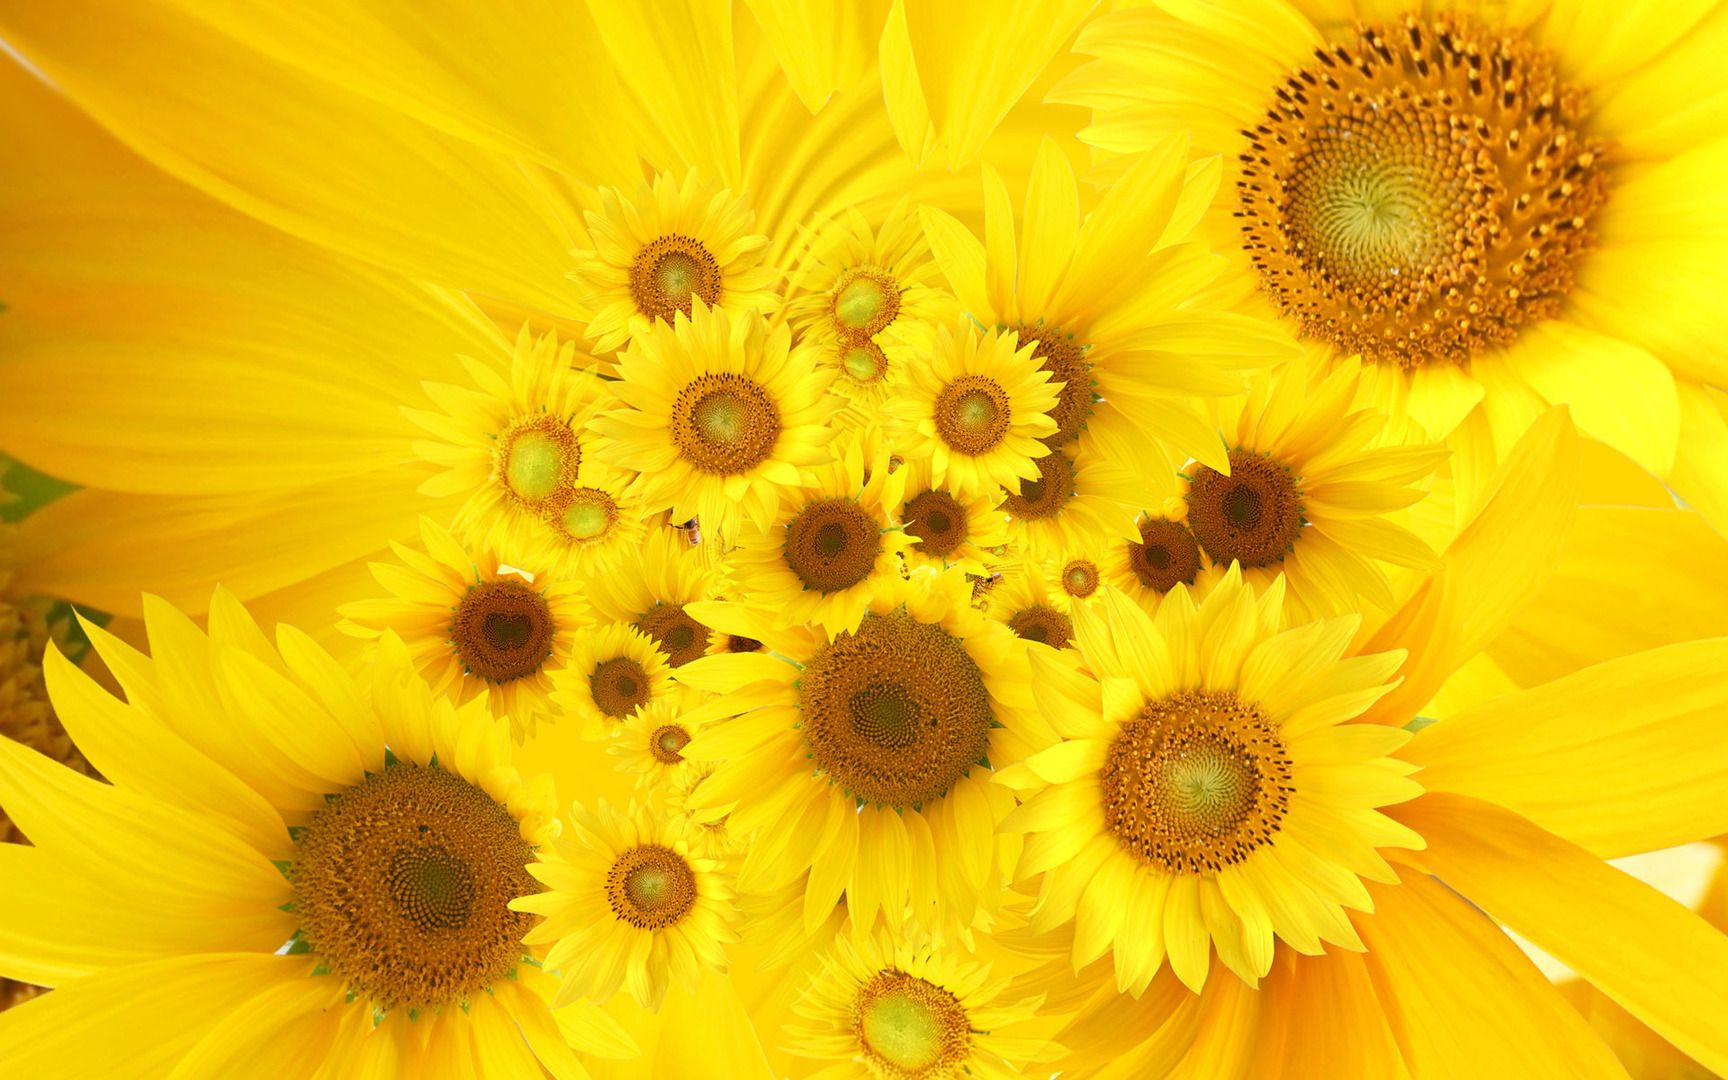 Sunflowers HD 1080p Wallpapers Download Hd 1080p